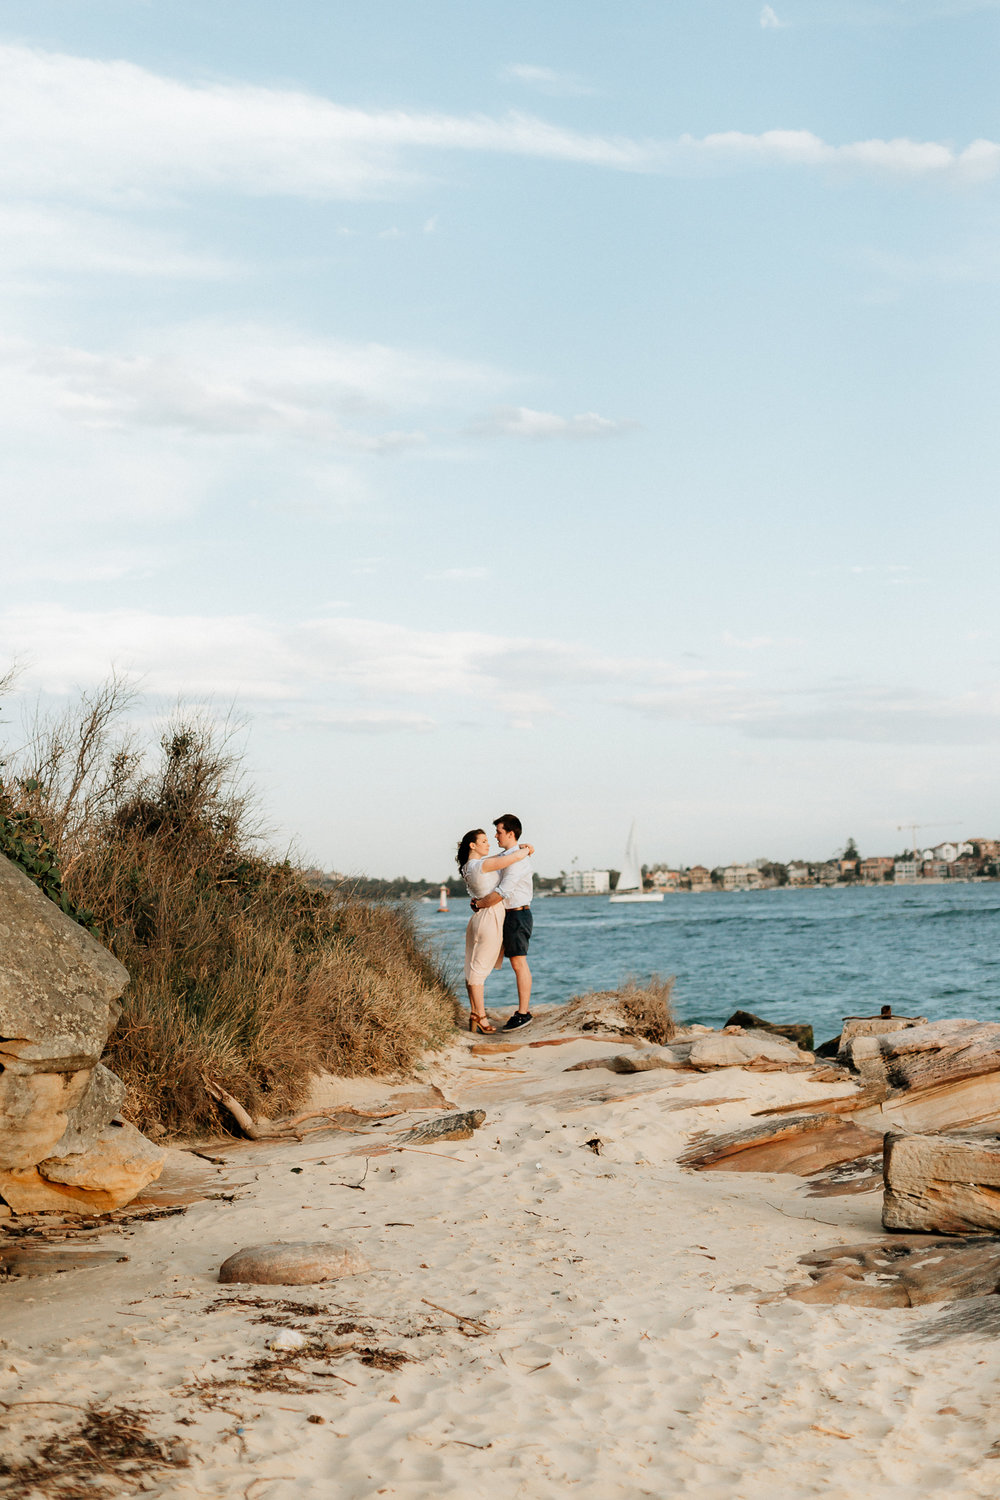 Amanzi and Steven_Engagement_Sydney_Holly Medway Photography-7.JPG